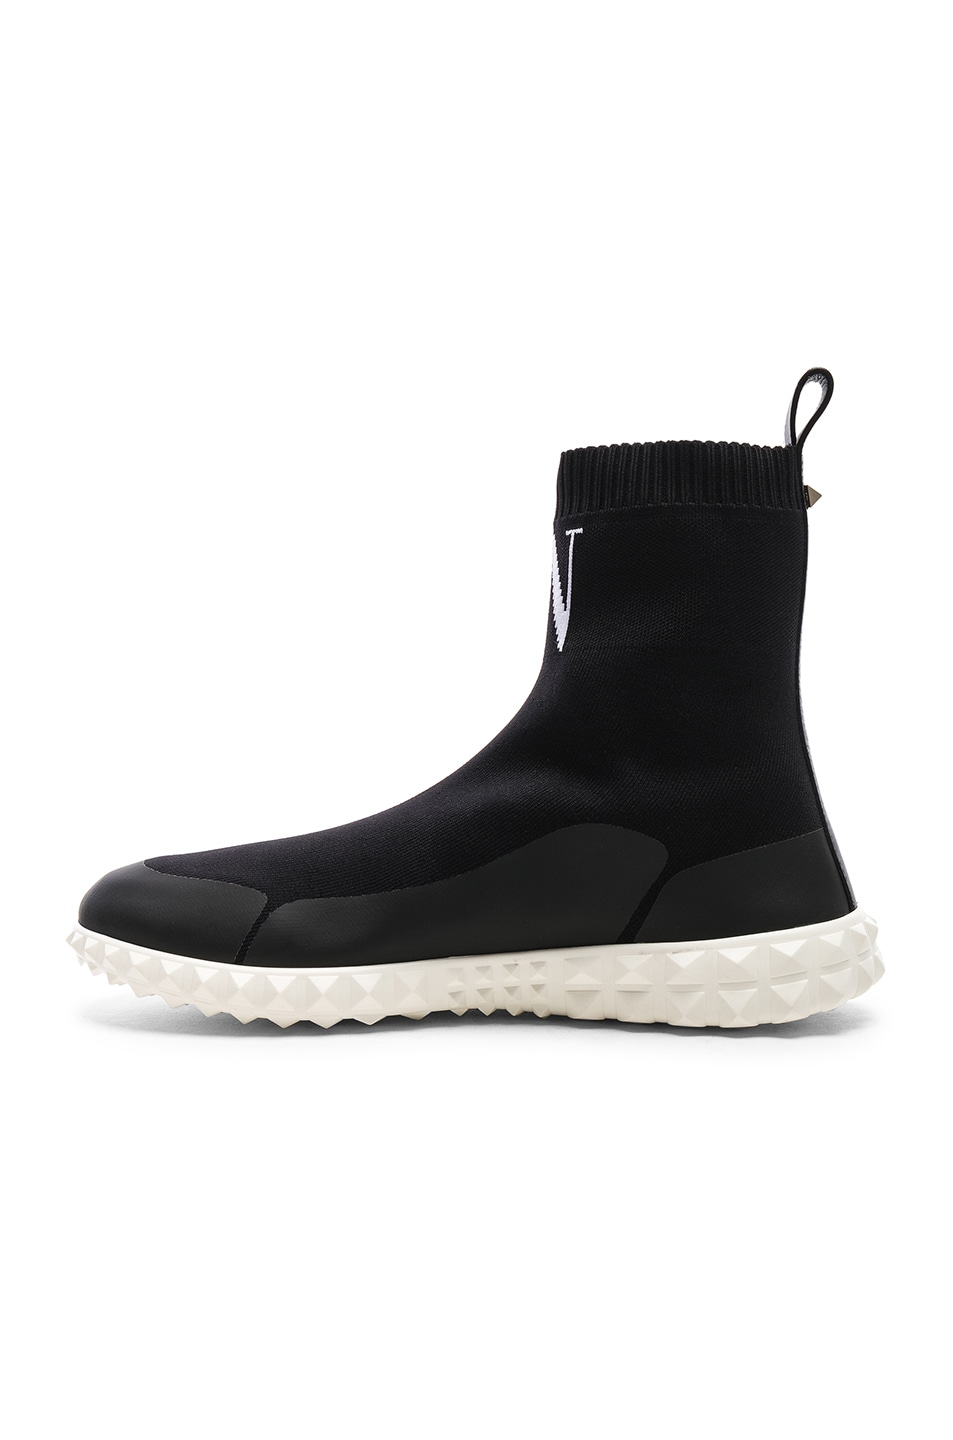 Image 5 of Valentino VLTN High Top Sock Sneakers in Black & White